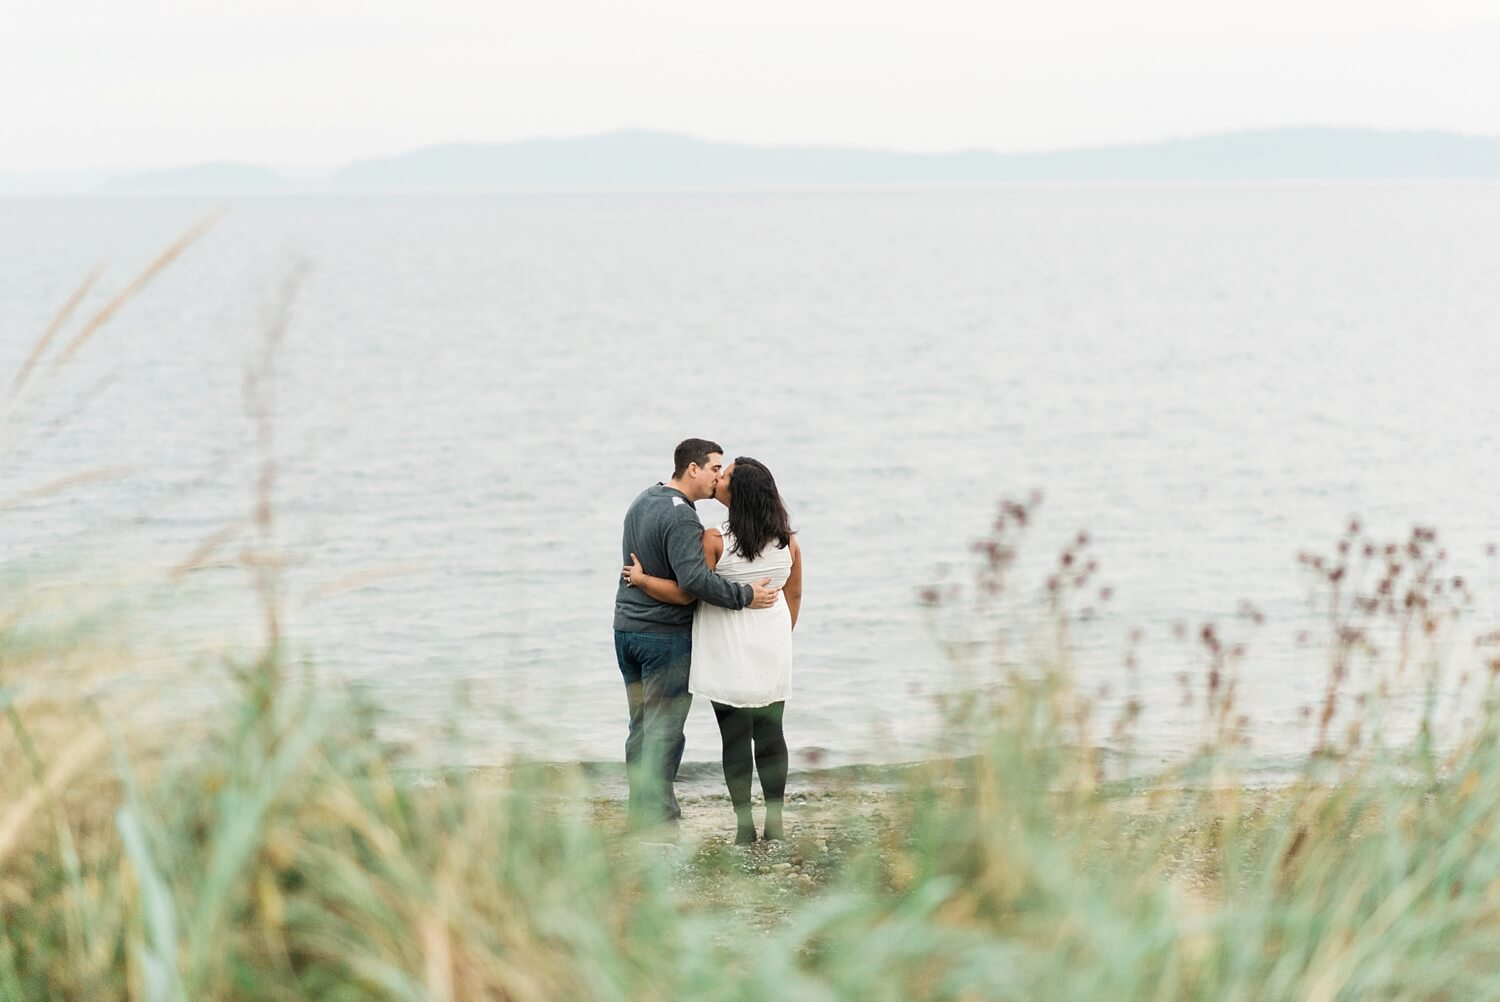 seattle-beach-engagement-photography-west-point-lighthouse-discovery-park-shelley-marie-photo-830_cr.jpg